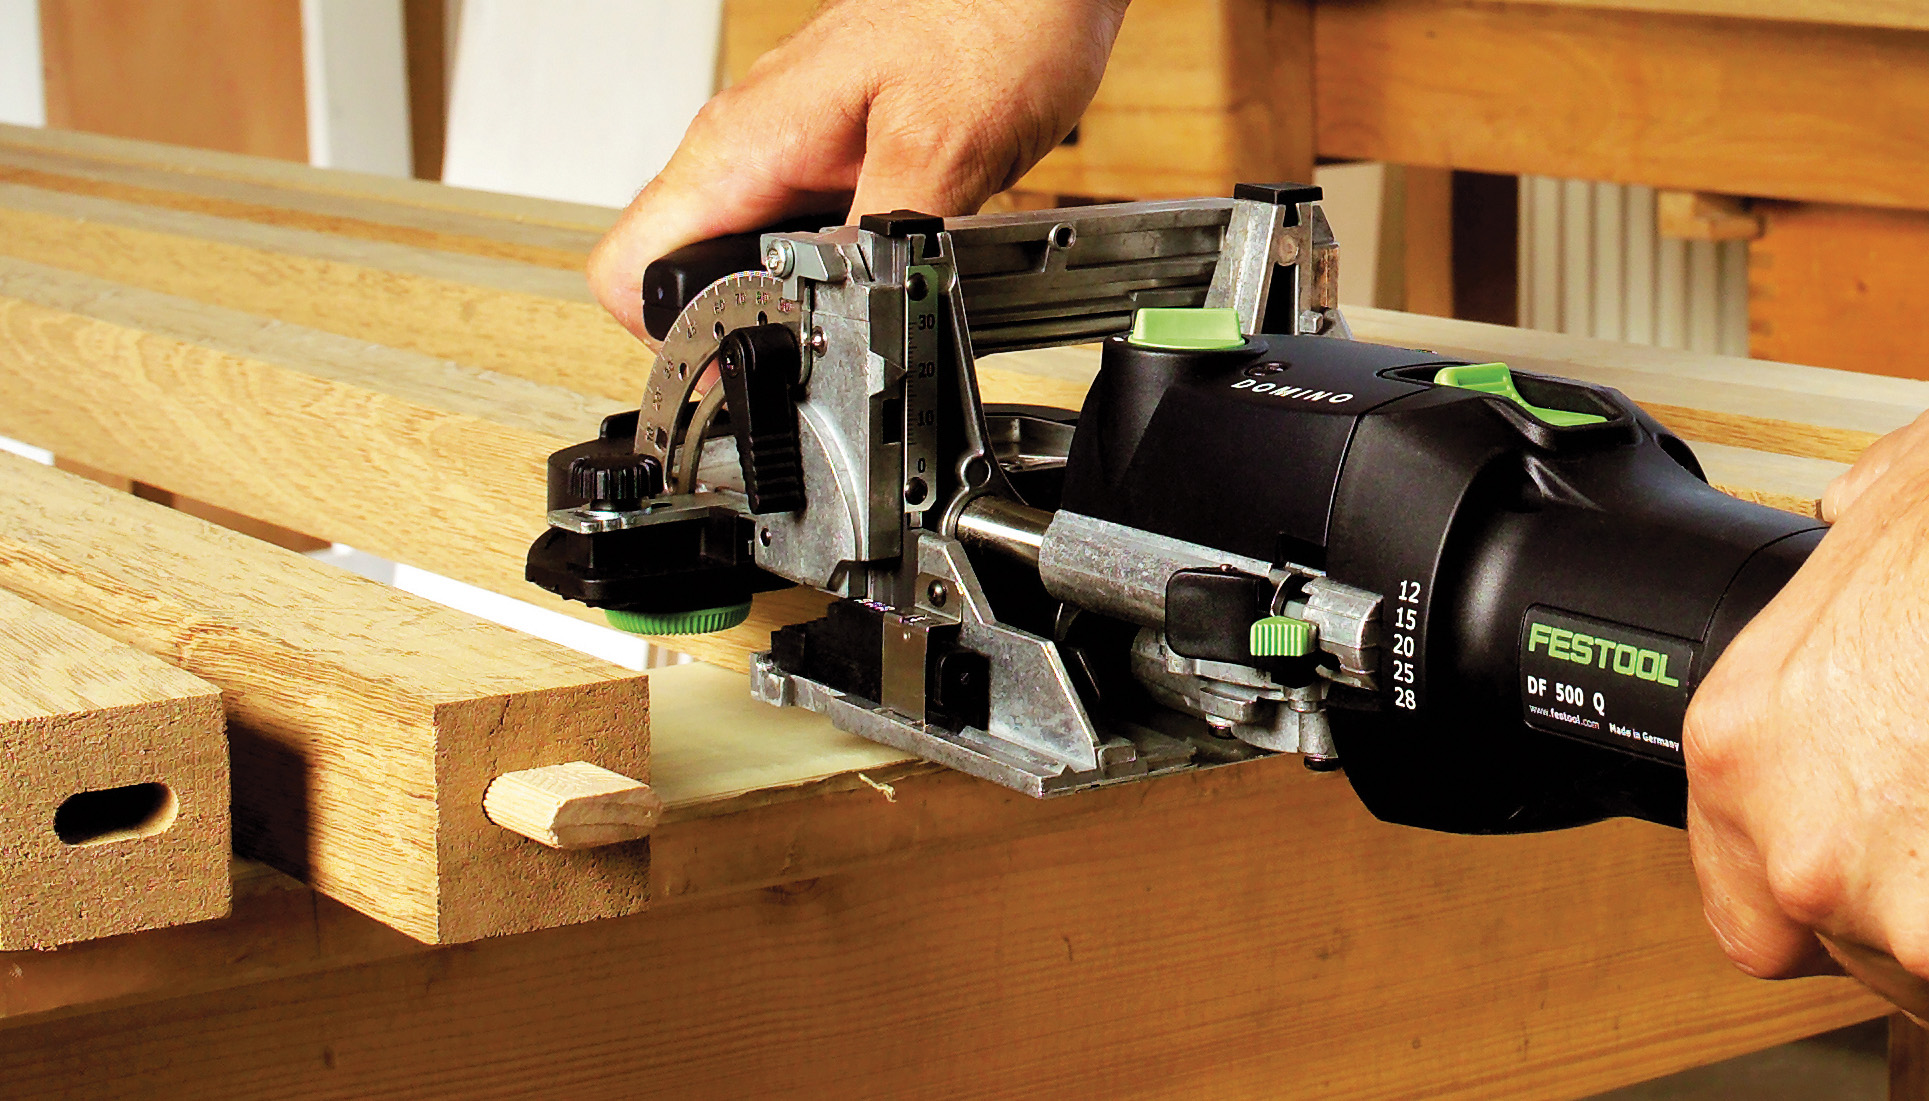 Festool Domino DF 500 Joiner, Accessories, and Dominos